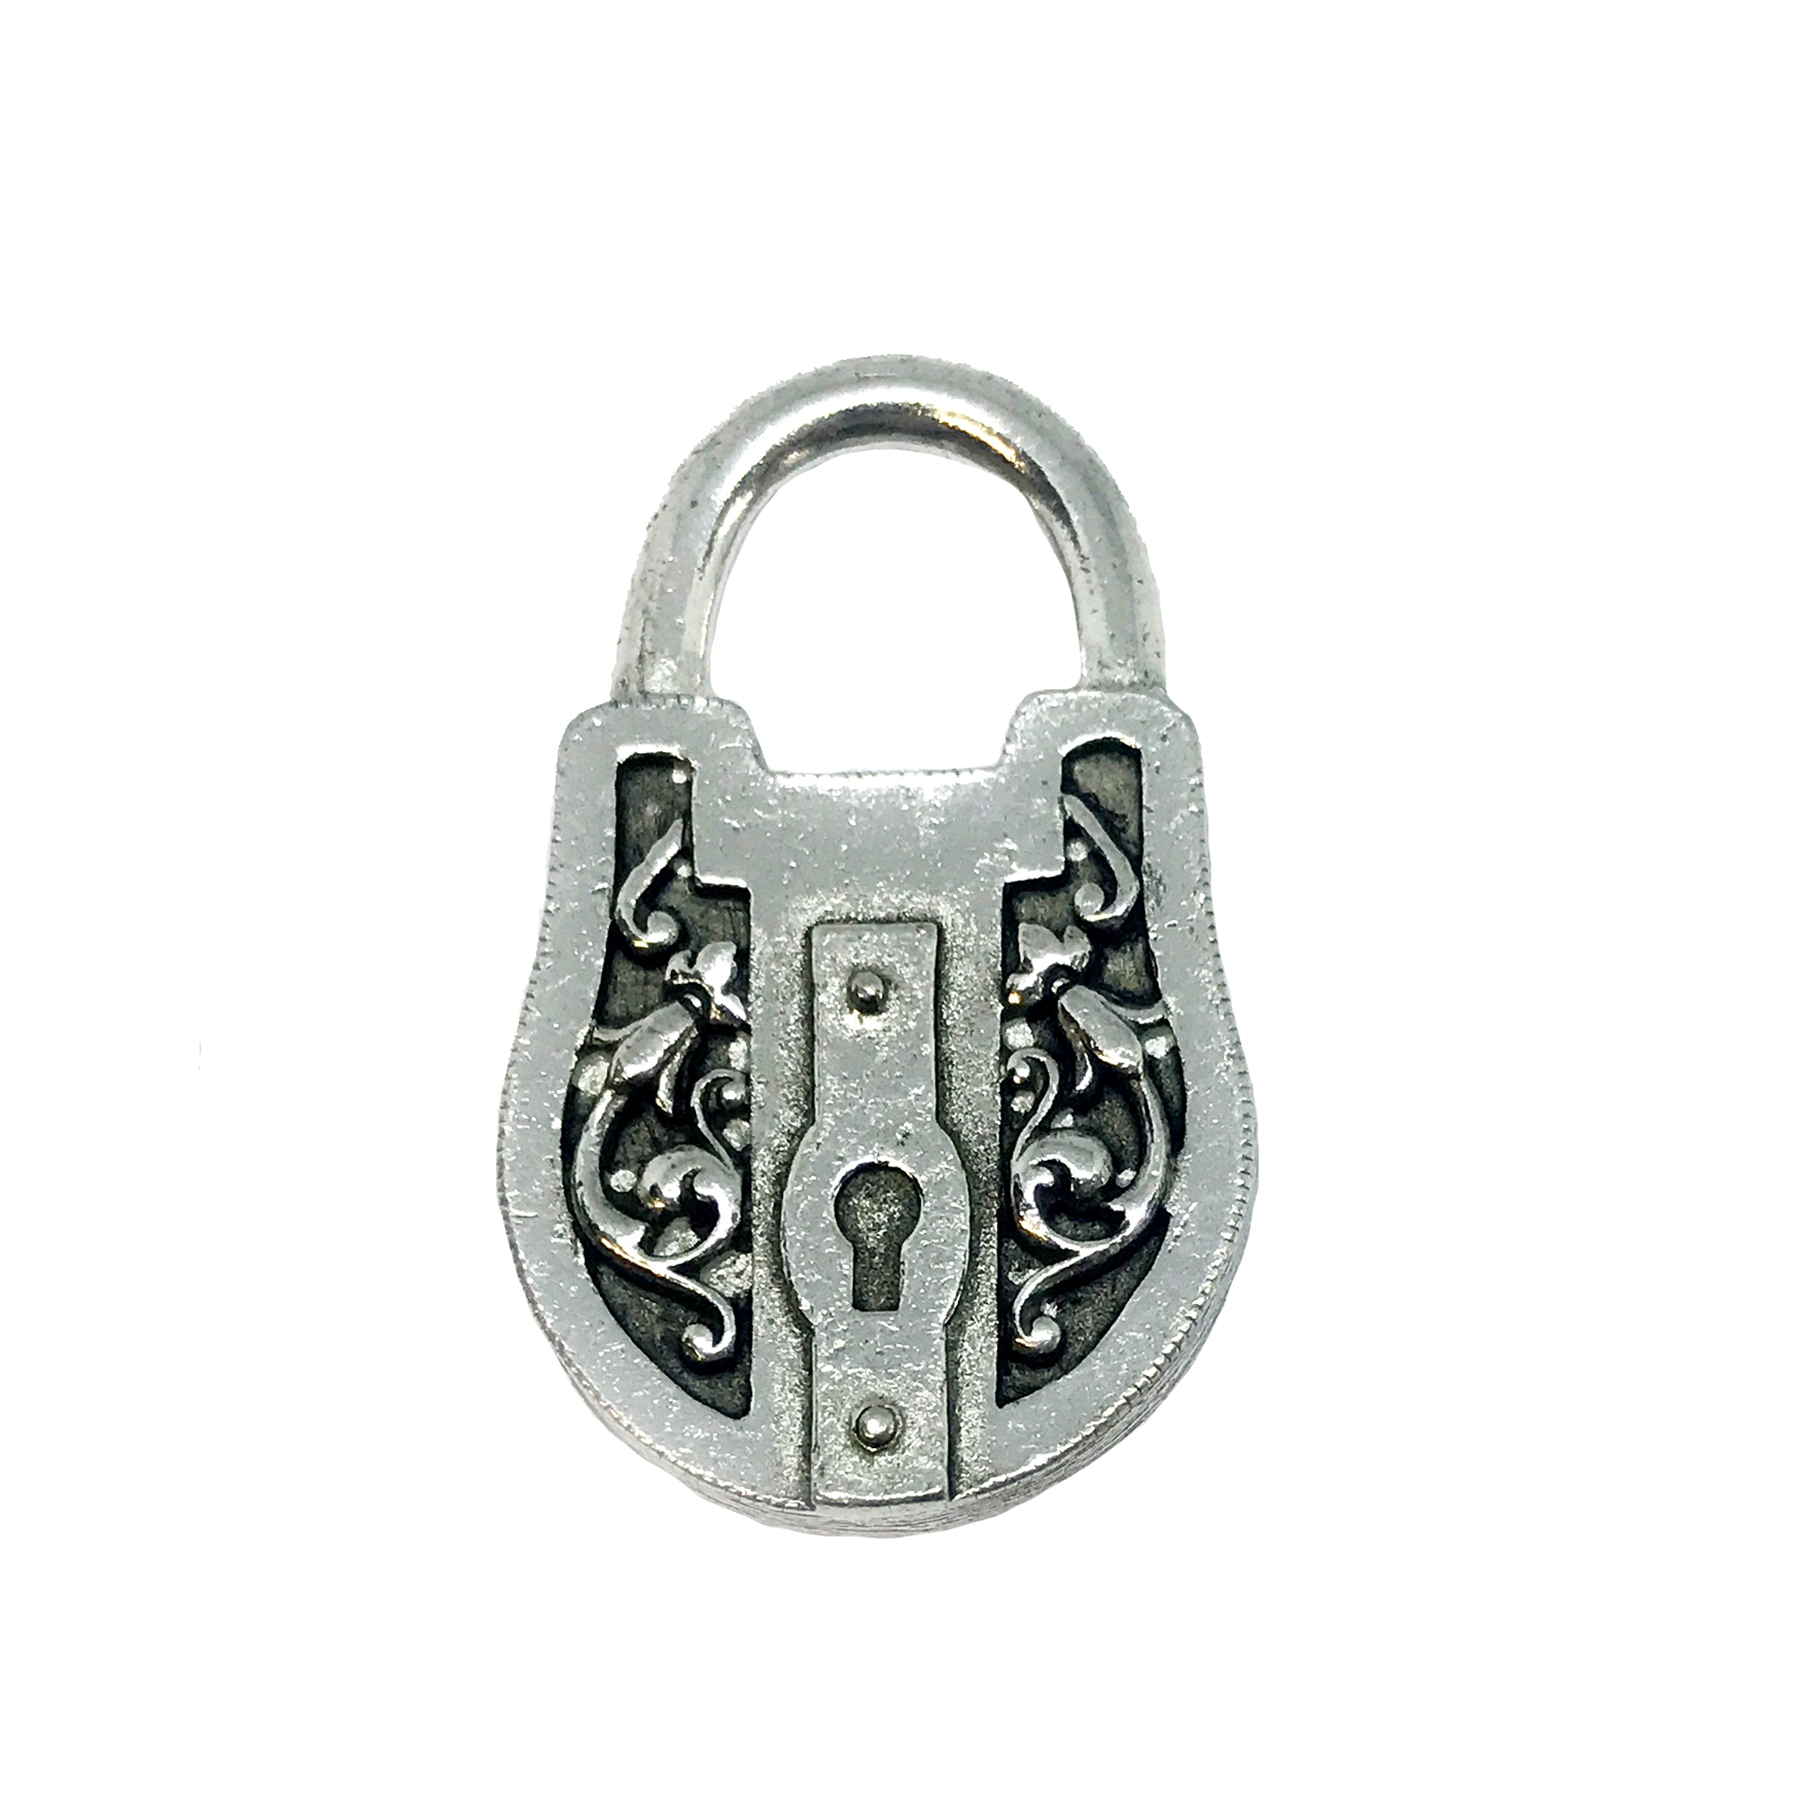 Victorian style padlock, pendant, victorian style lock stamping, lock, old silver pewter, old silver, 3d charm, vintage style, antique silver, us made, nickel free, B'sue Boutiques, B'sue by 1928, lead free pewter, vintage supplies, jewelry making, 04890